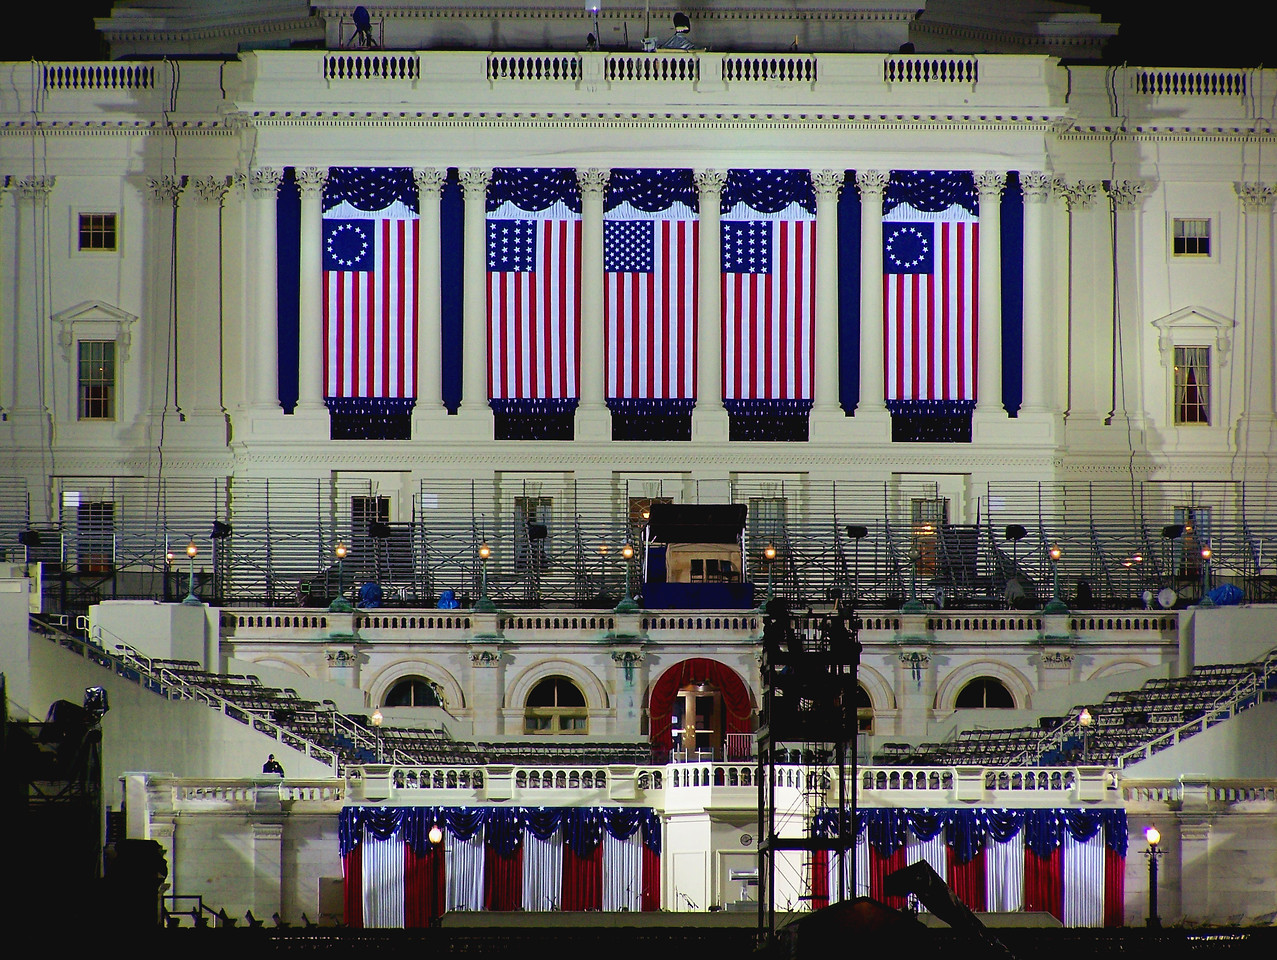 Capital Building, Inauguration Eve 2008 - Wash DC